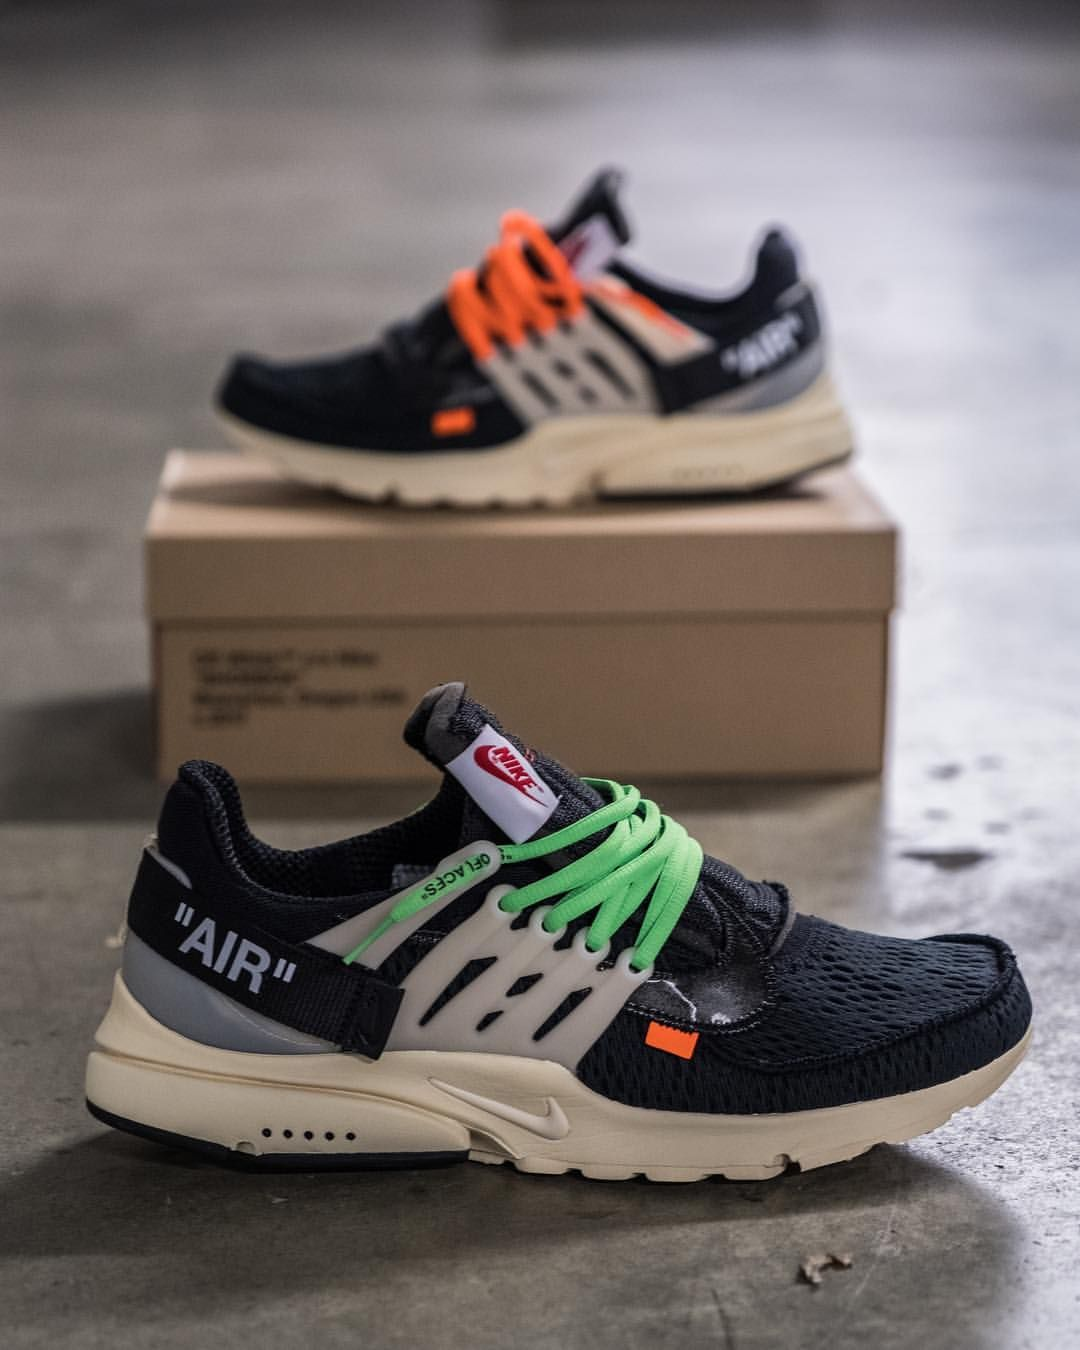 Off White X Nike Air Presto Hype Shoes Sneakers Best Sneakers